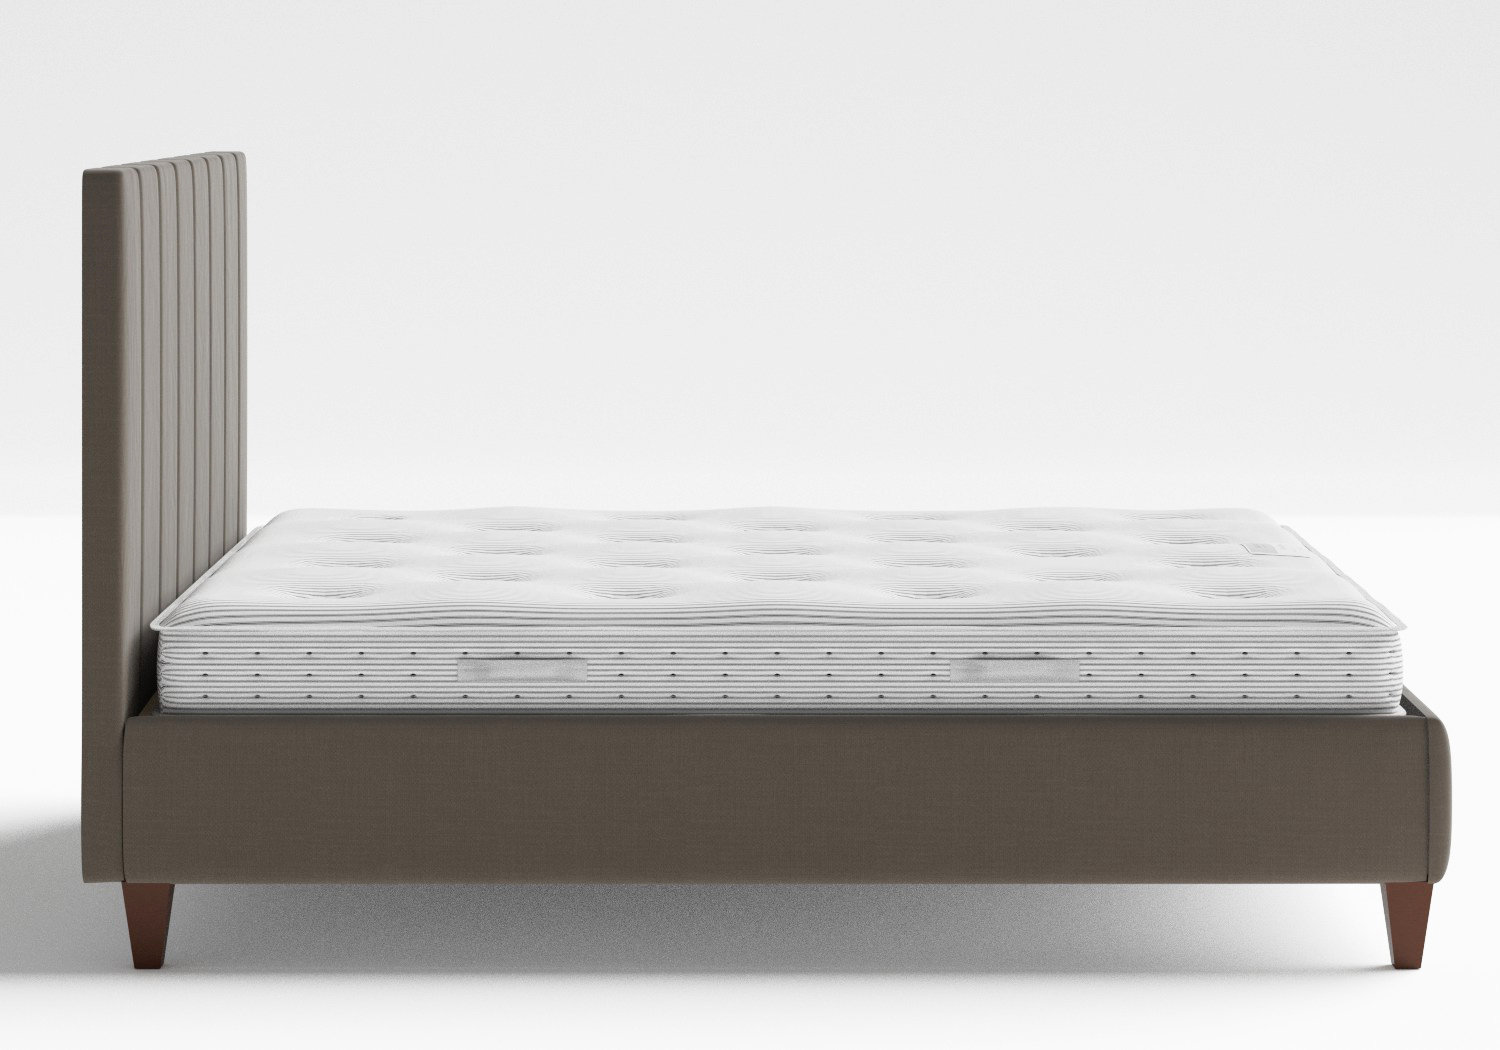 Yushan Upholstered Bed in Grey fabric shown with Juno 1 mattress